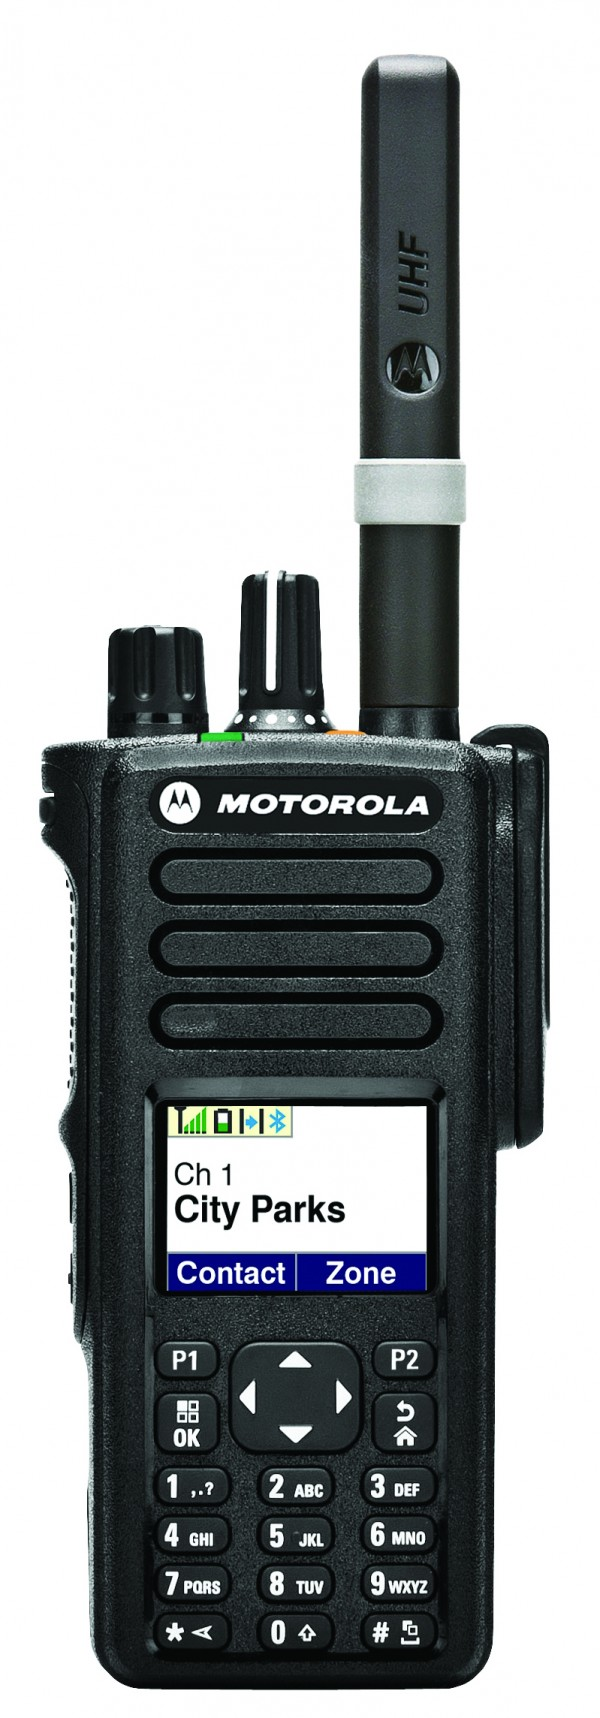 One of many MotoTRBO portable devices, Motorola's XPR 7000 Series delivers voice and data communication with integrated Bluetooth audio and data, GPS, and text messaging.